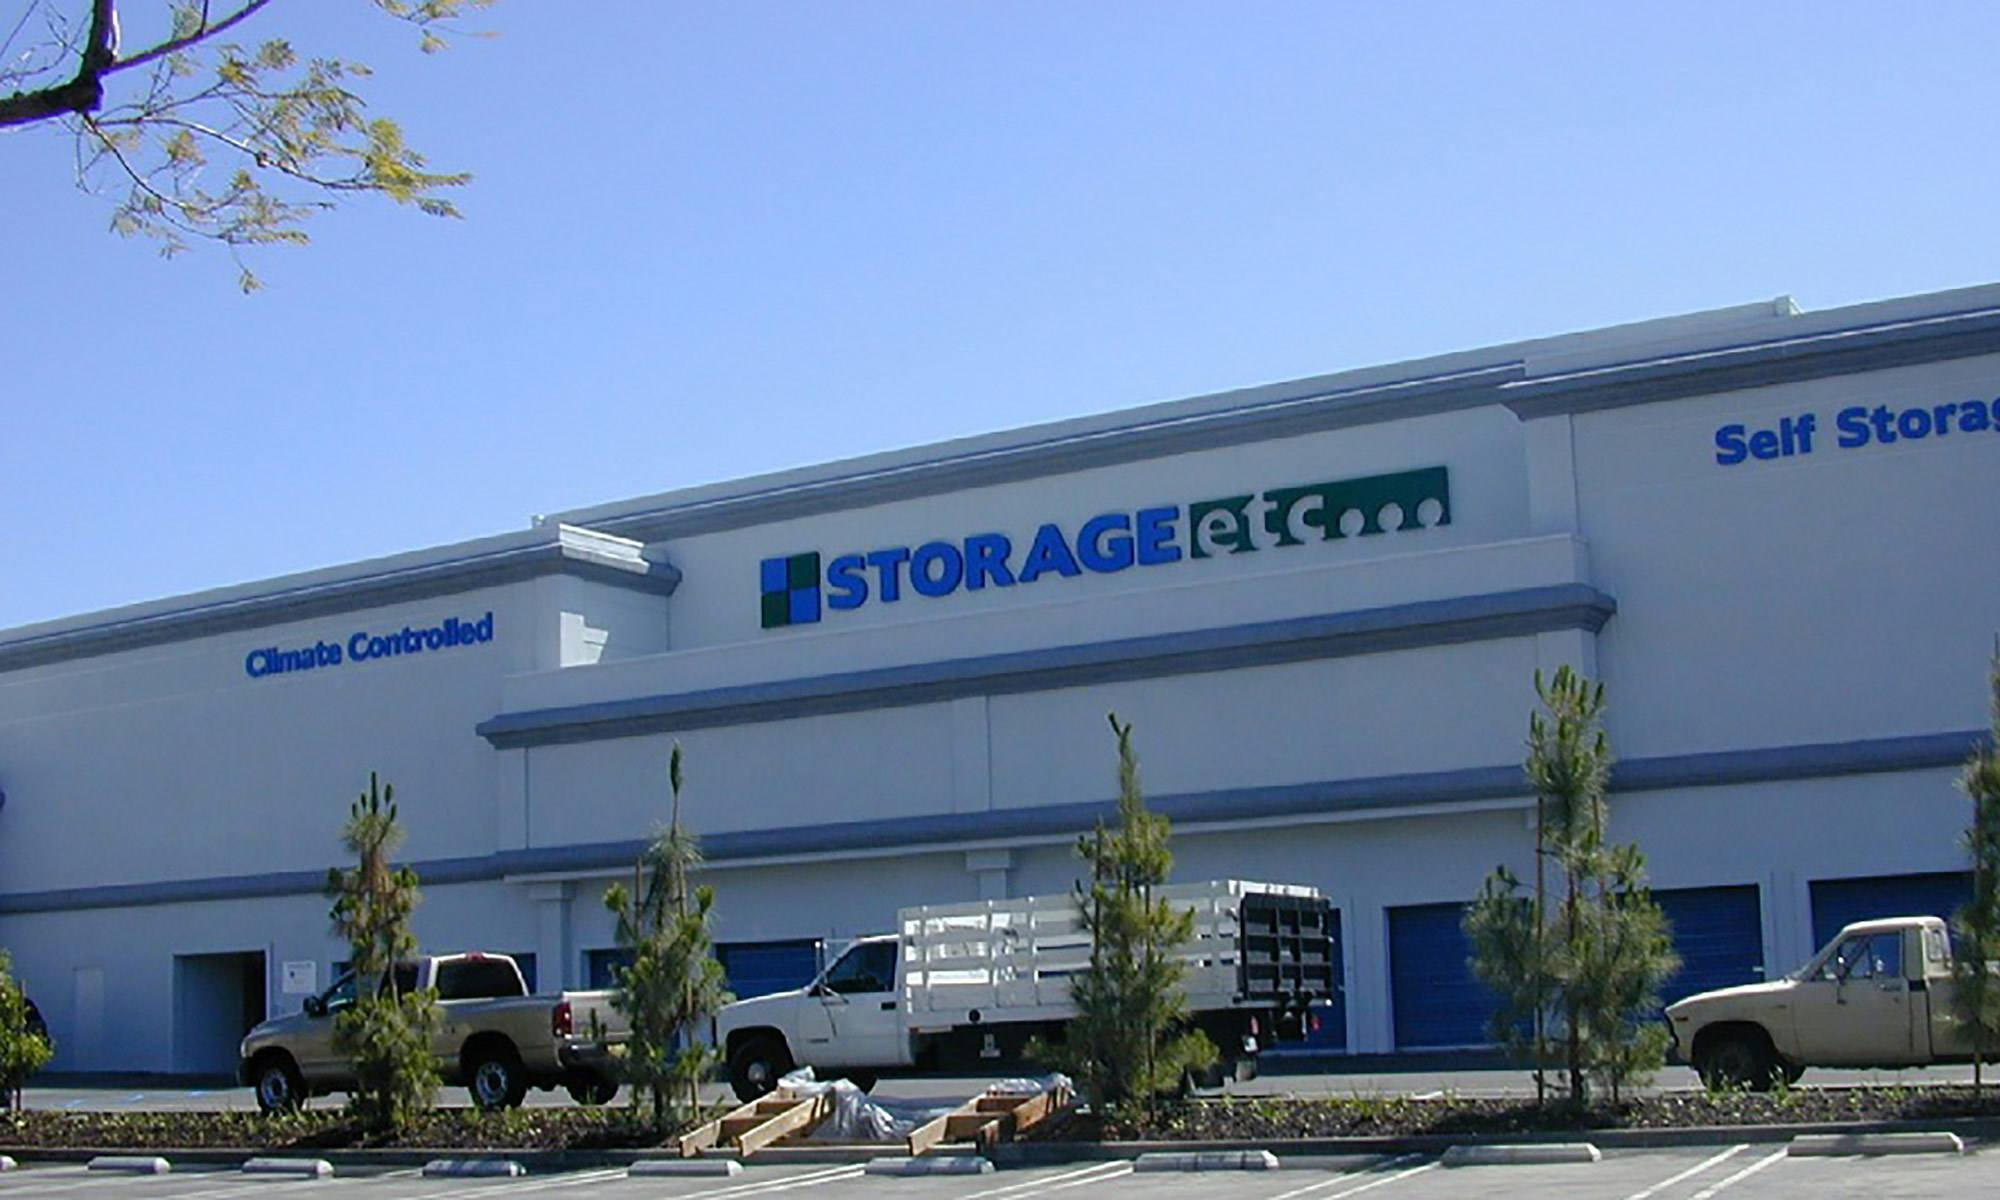 Self storage in Woodland Hills CA